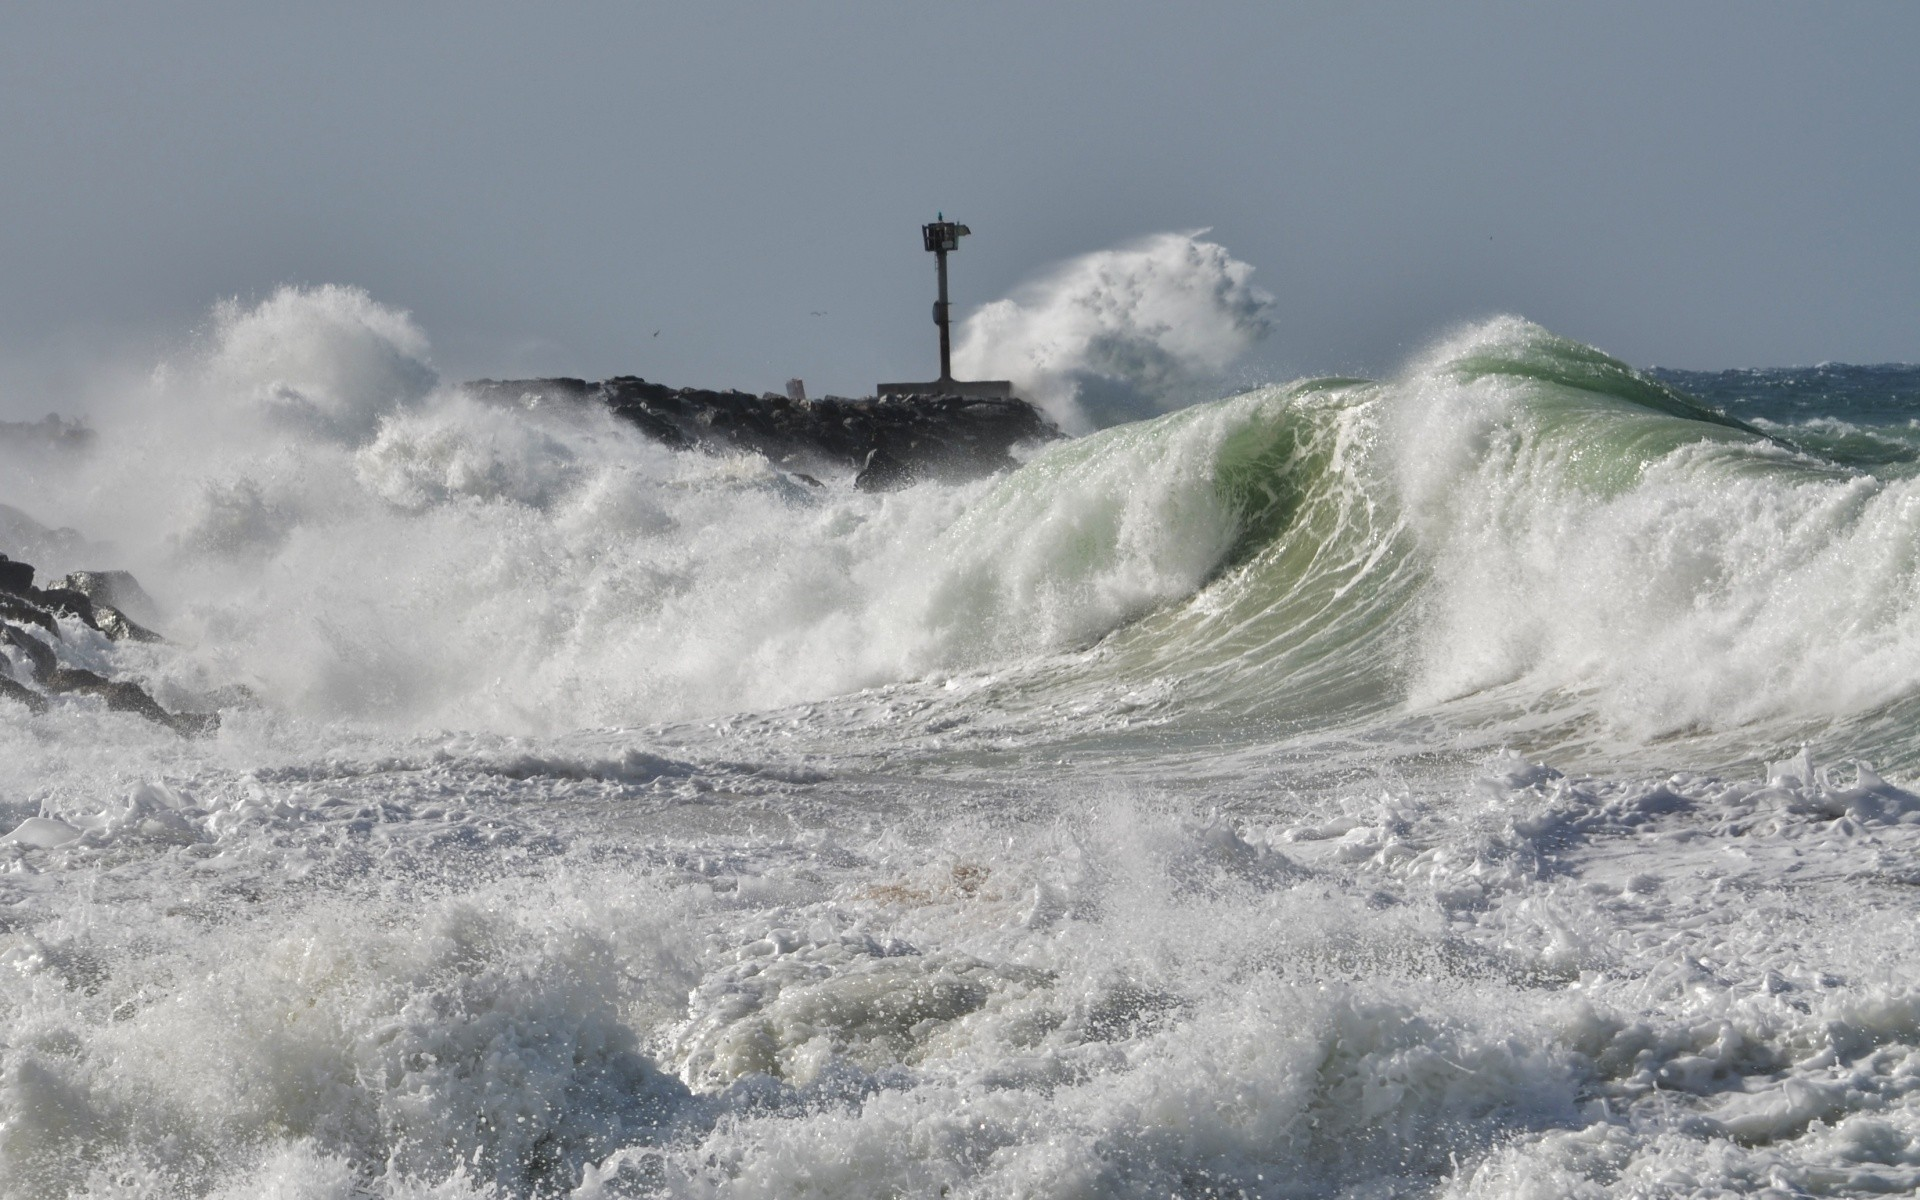 Surfer's photo of The Wedge